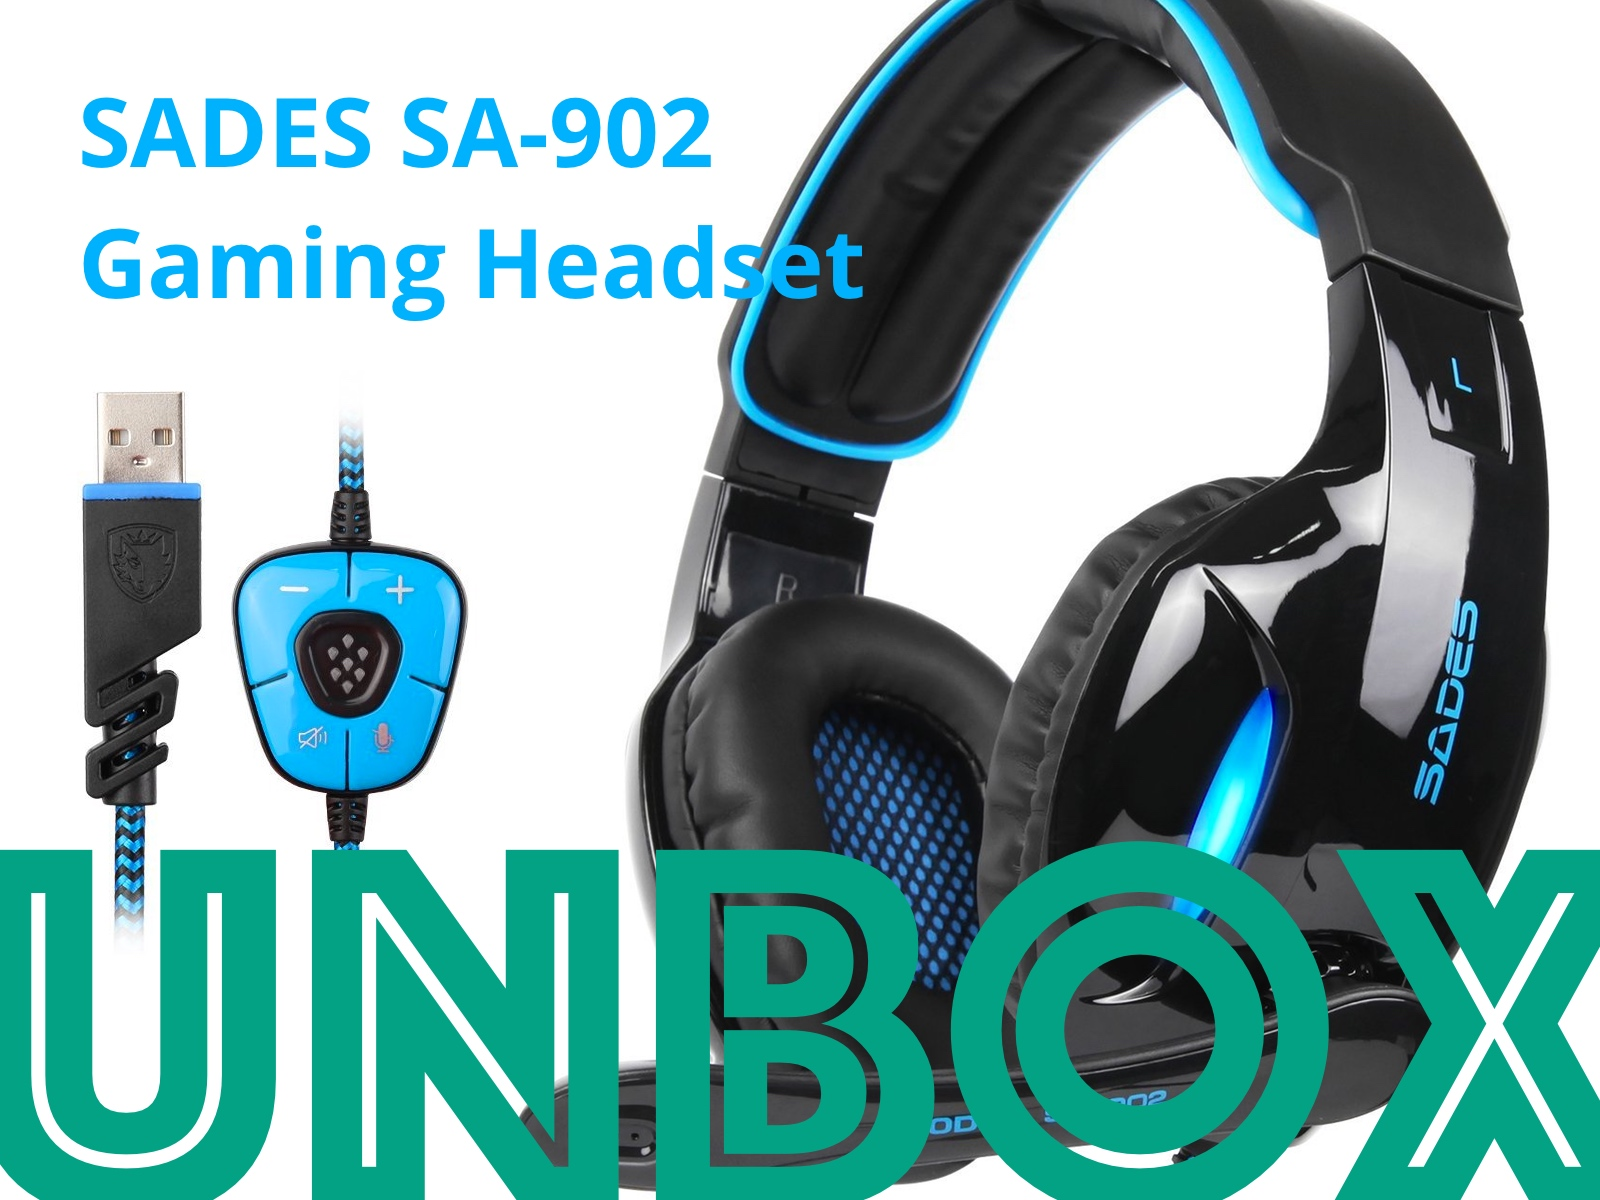 SADES SA-902 Gaming Headset